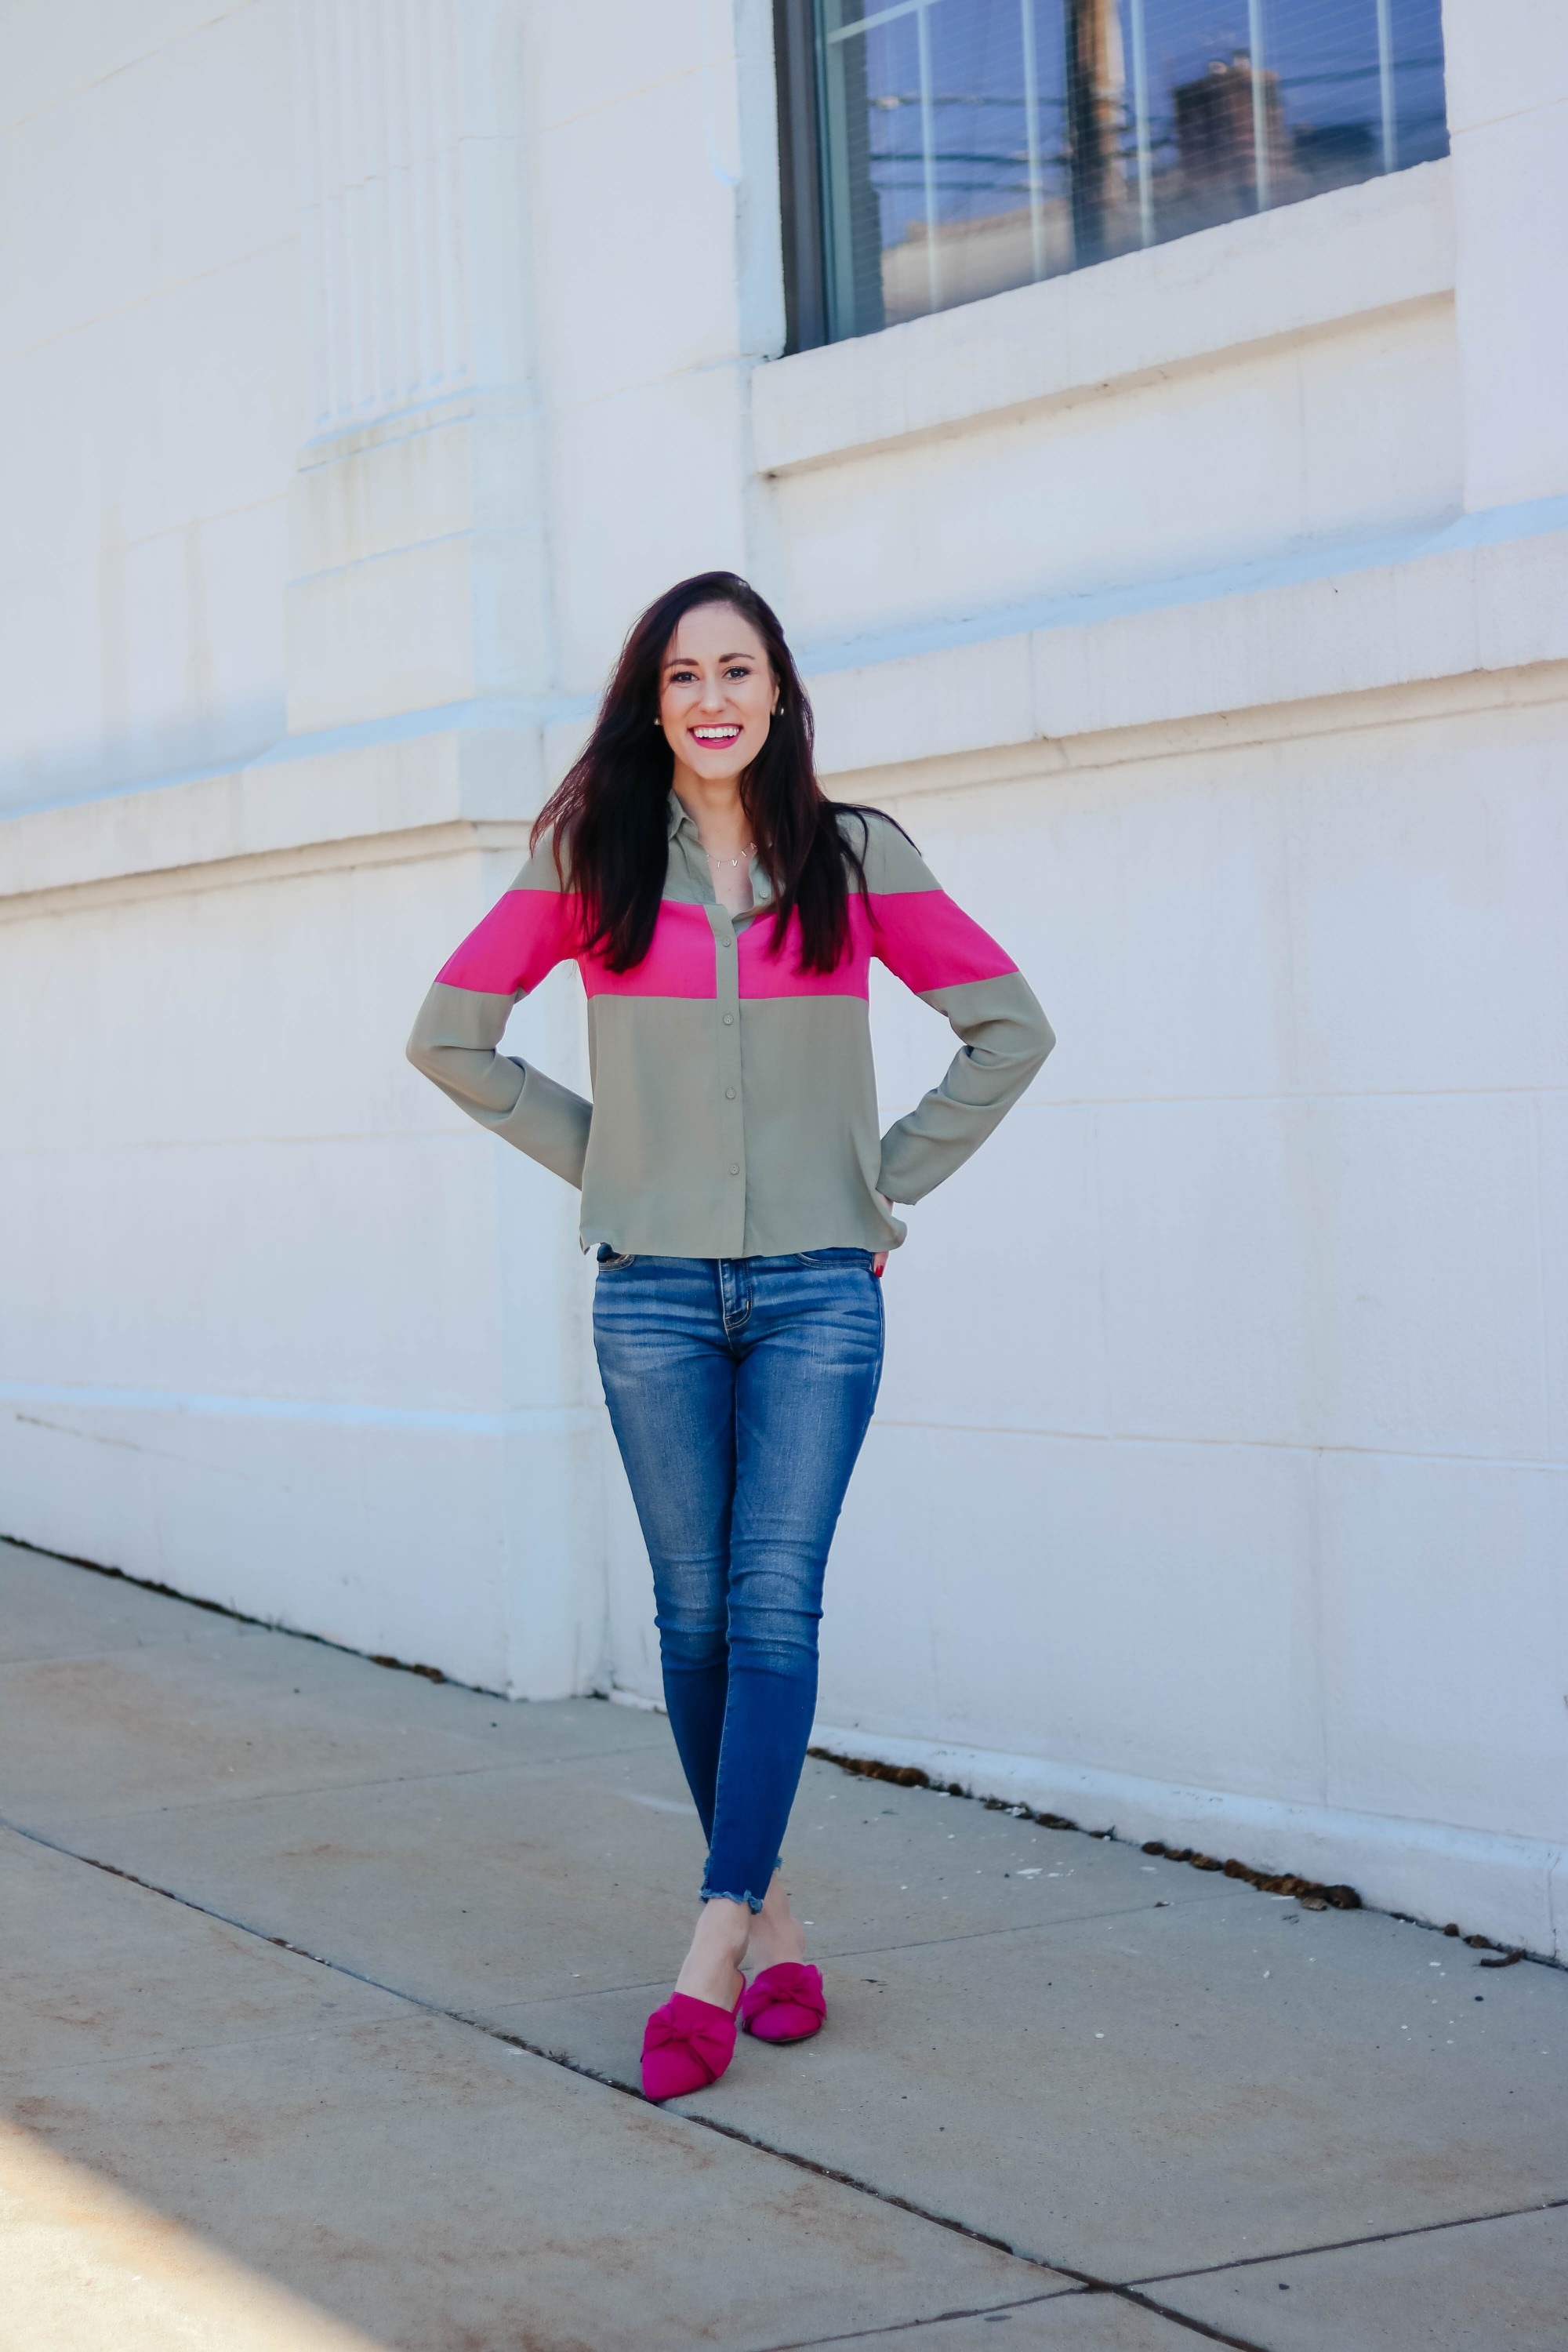 On This Month's Radar - Striped blouse, American Eagle jeans, spring outfit on Coming Up Roses